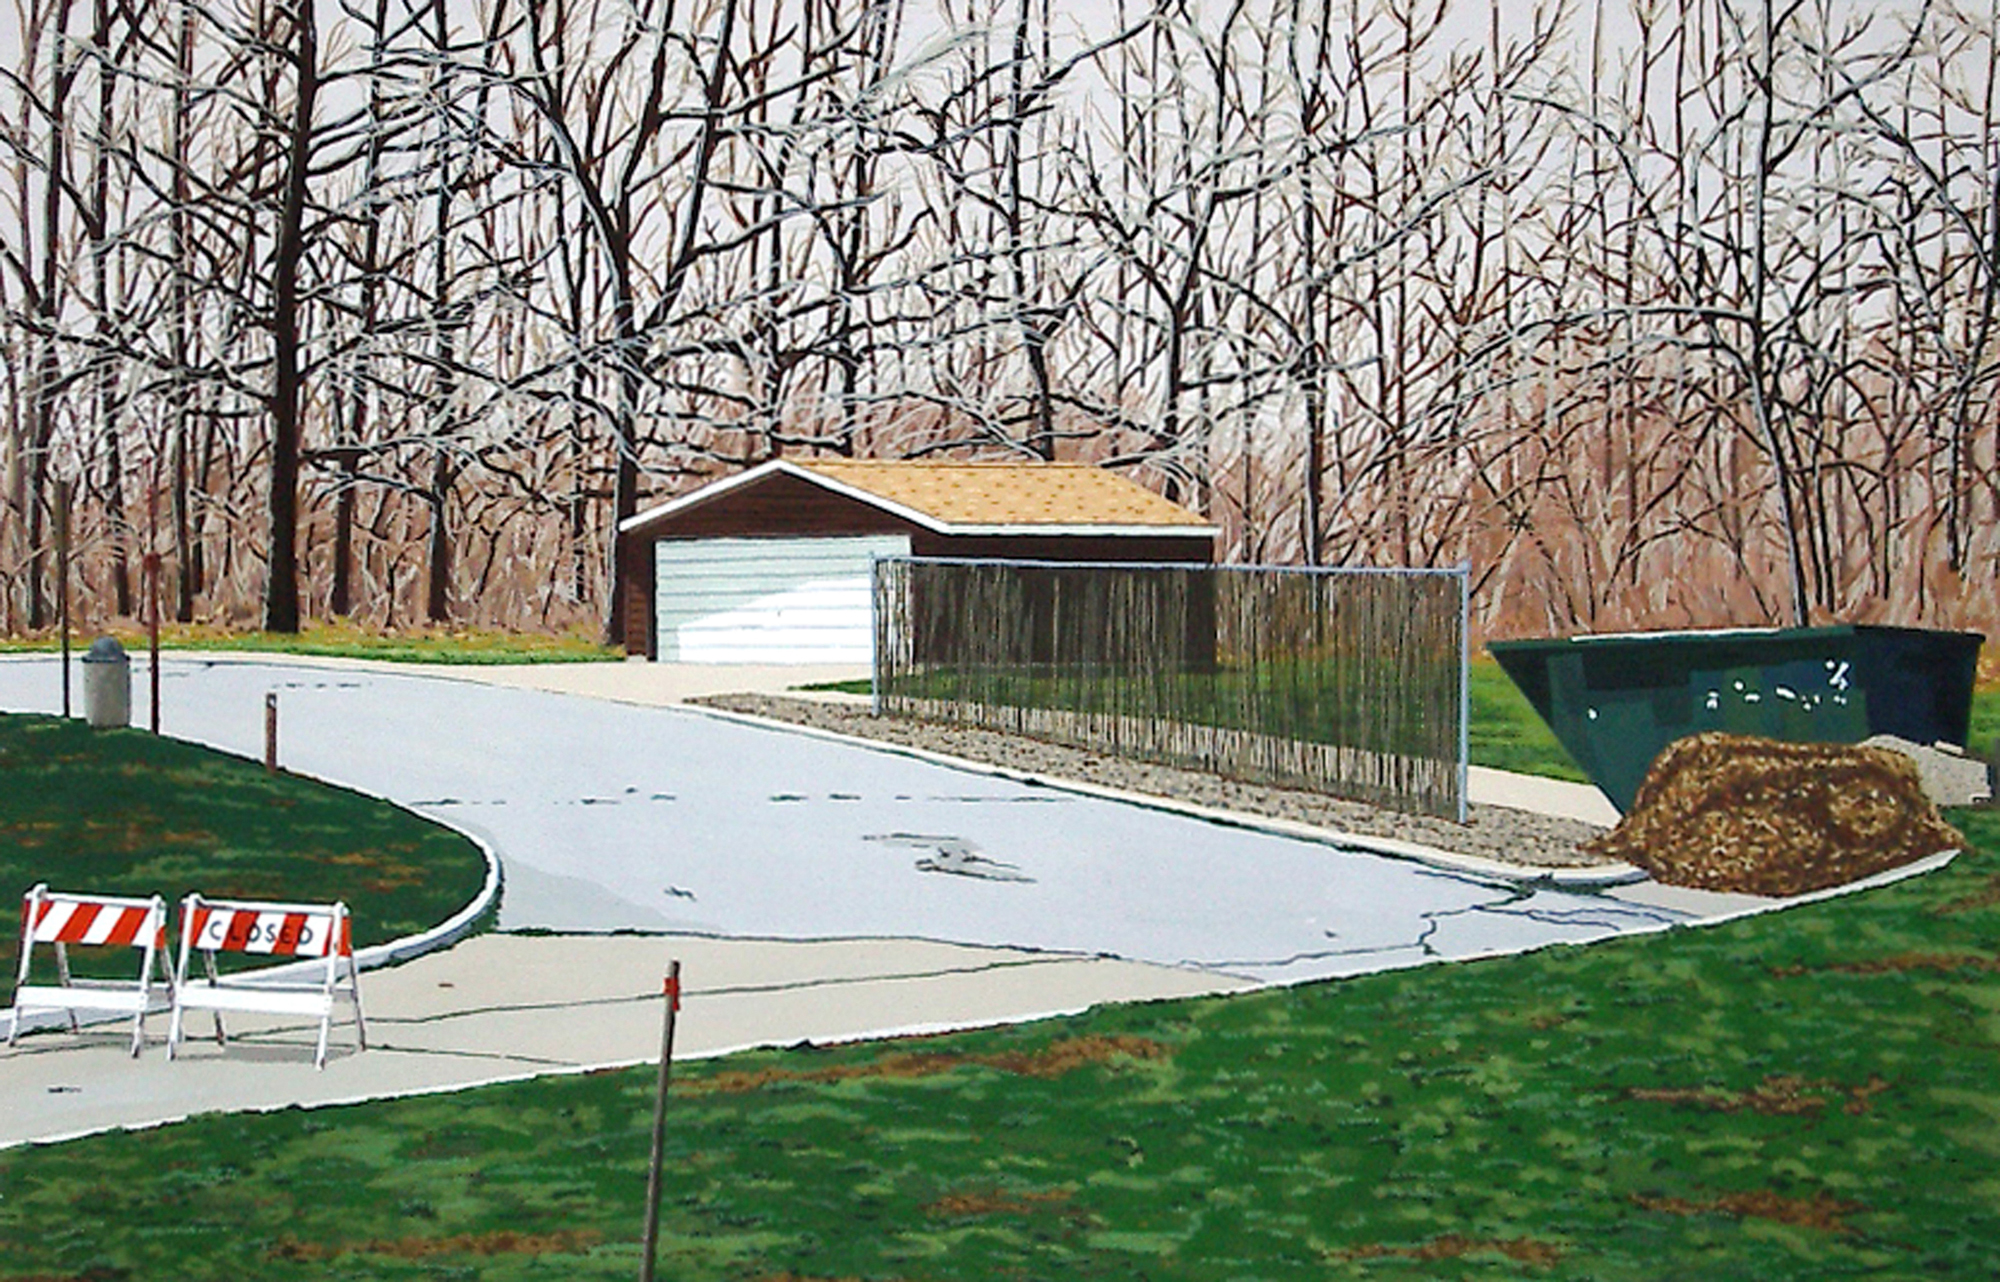 Go West Young Man #4, 2003, Gouache on Paper, 15 X 22 inches